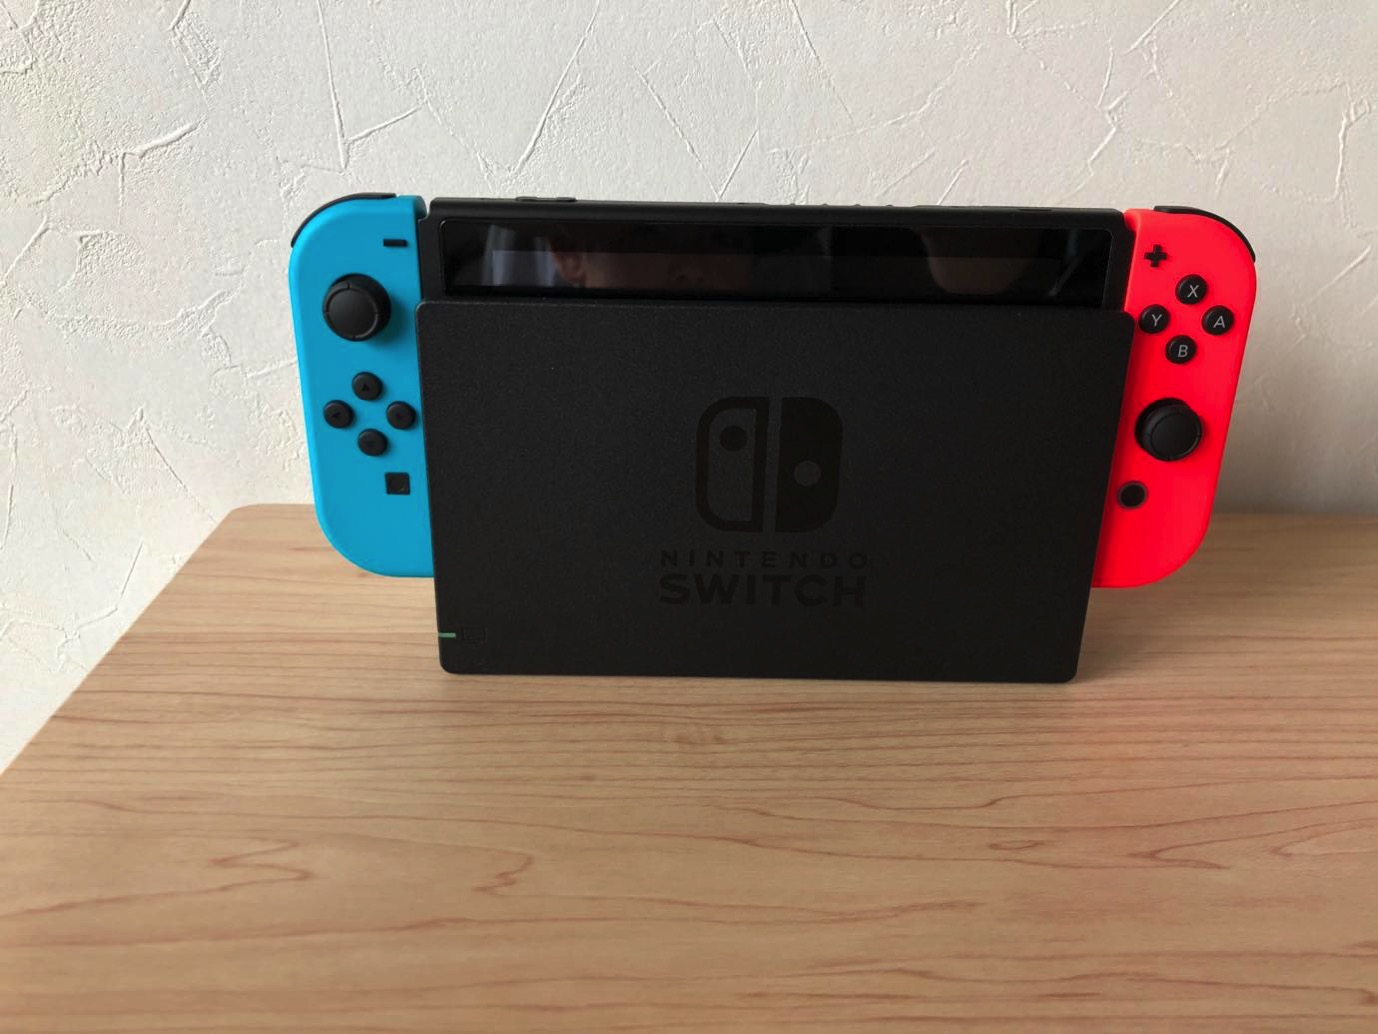 Nintendo Switch 保護ガラス 01 20171229 214959